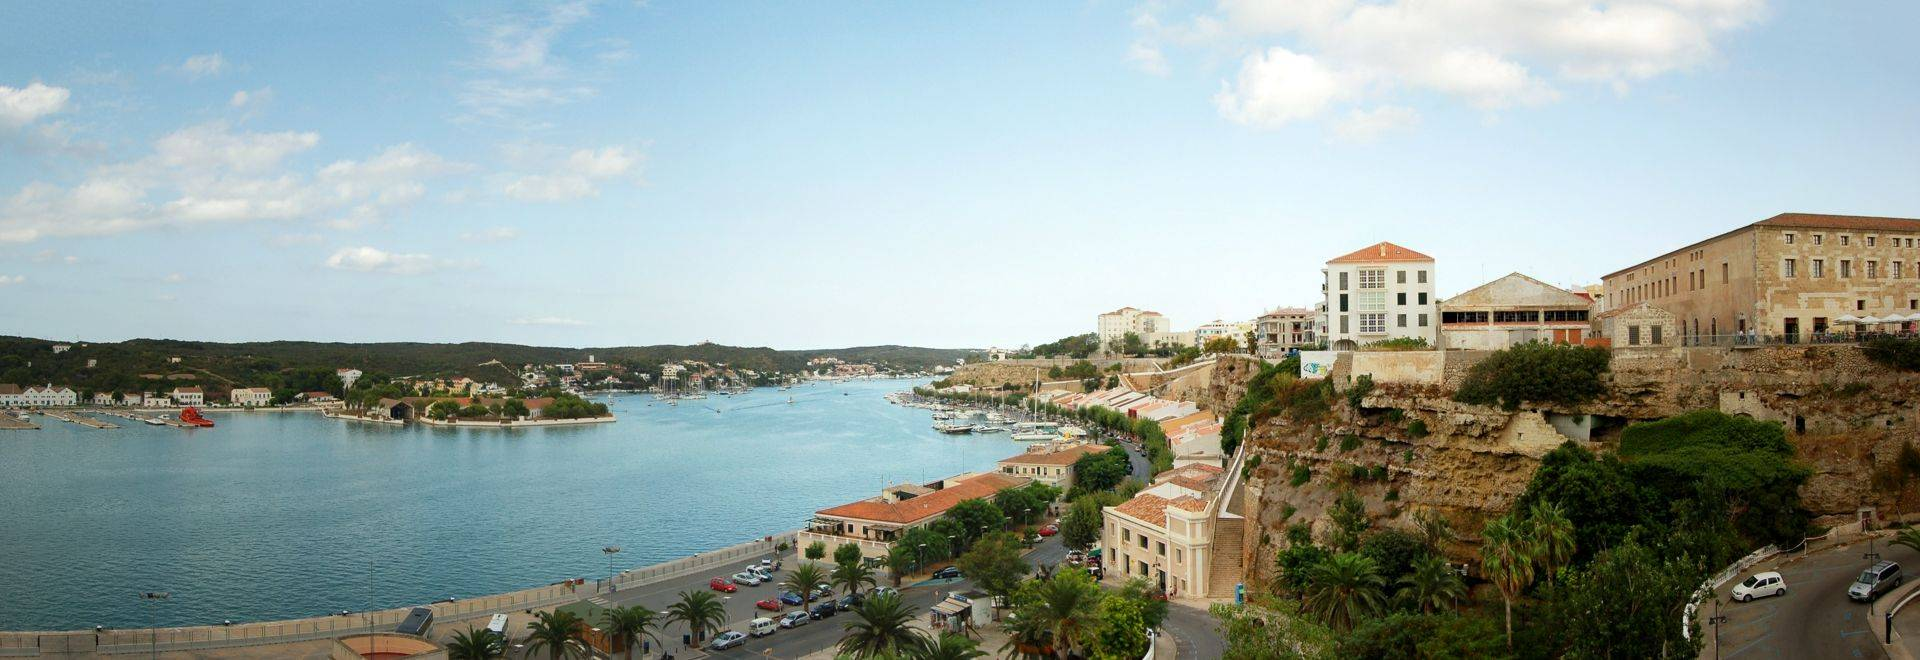 Panoramic view of old town at evening. Spain, Menorca, Mahon.